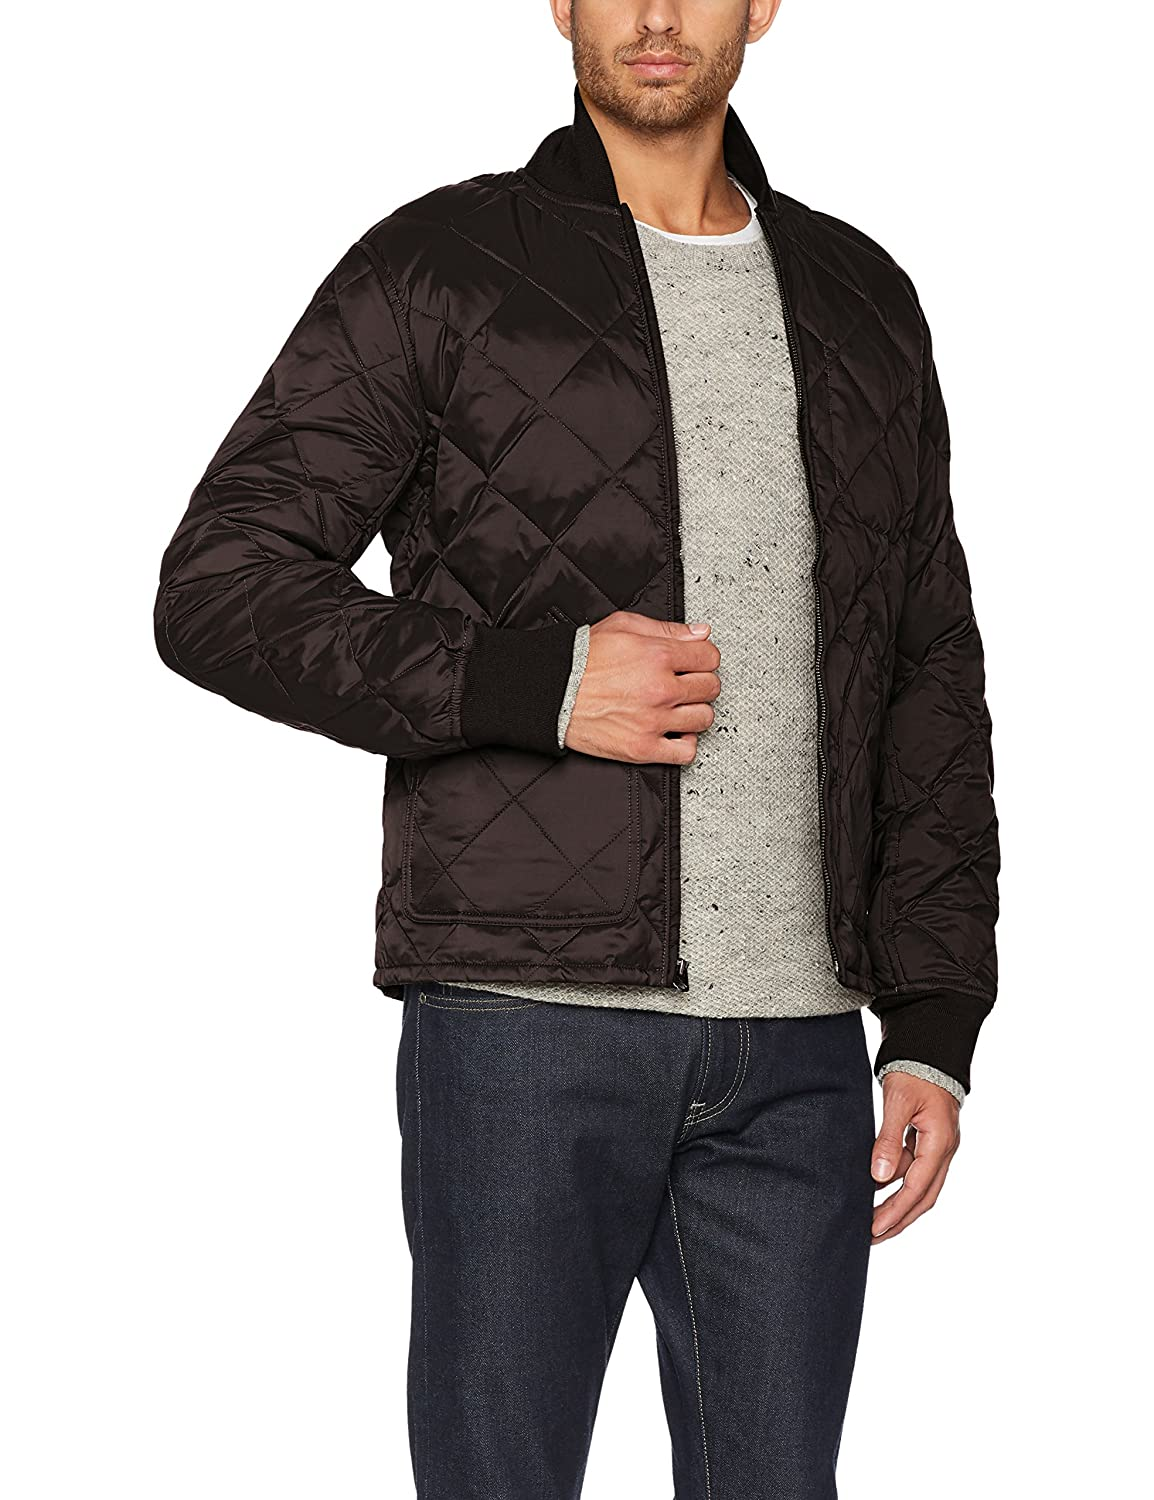 Dockers Vert 1 Blouson Jacket olive Quilted Down Homme Large pIwS8q